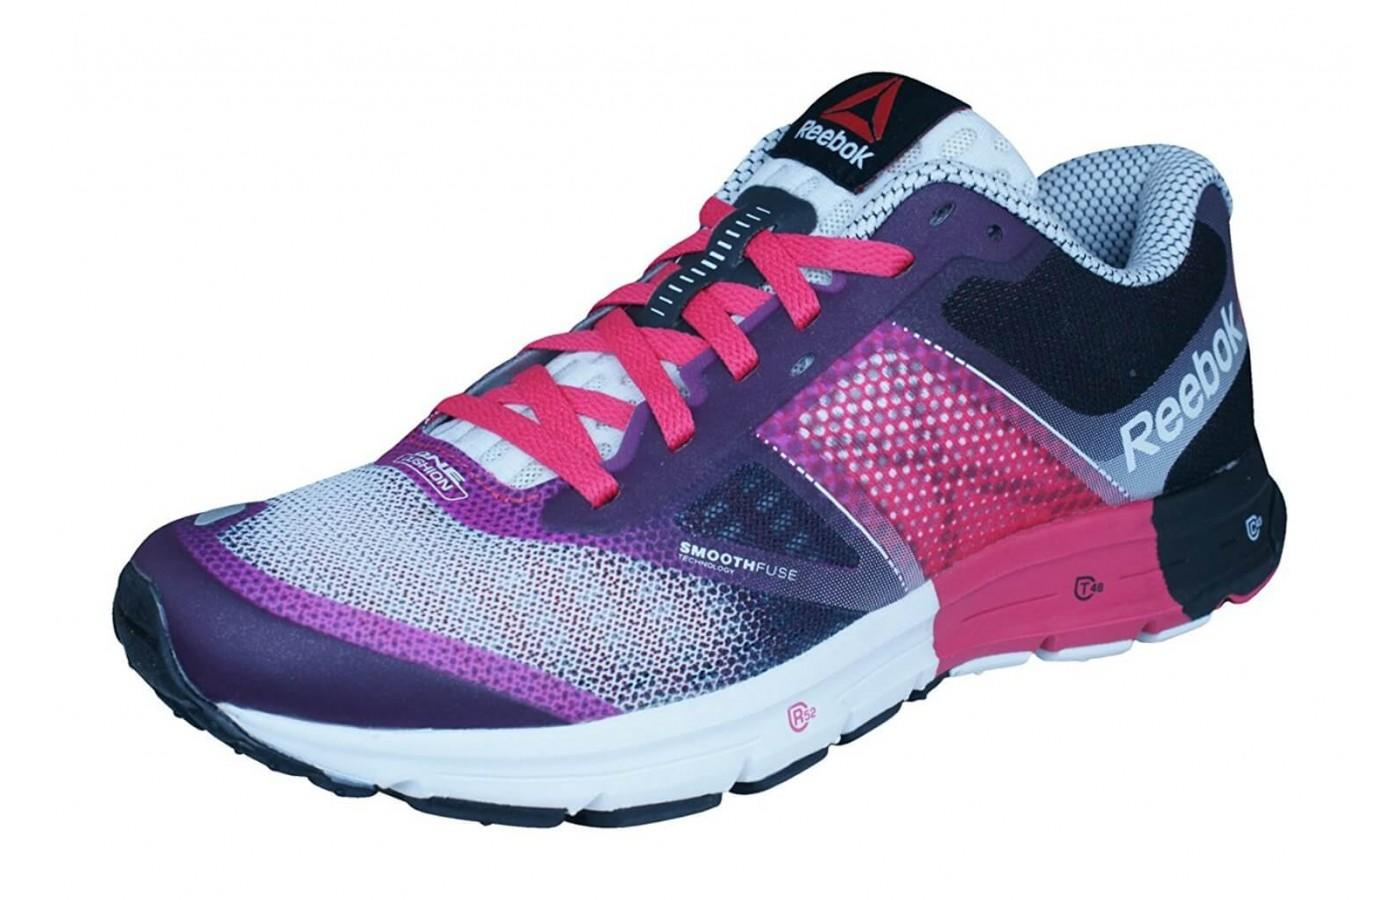 The Reebok Cushion One 2.0 is a cushioned shoe for the long distance runner.